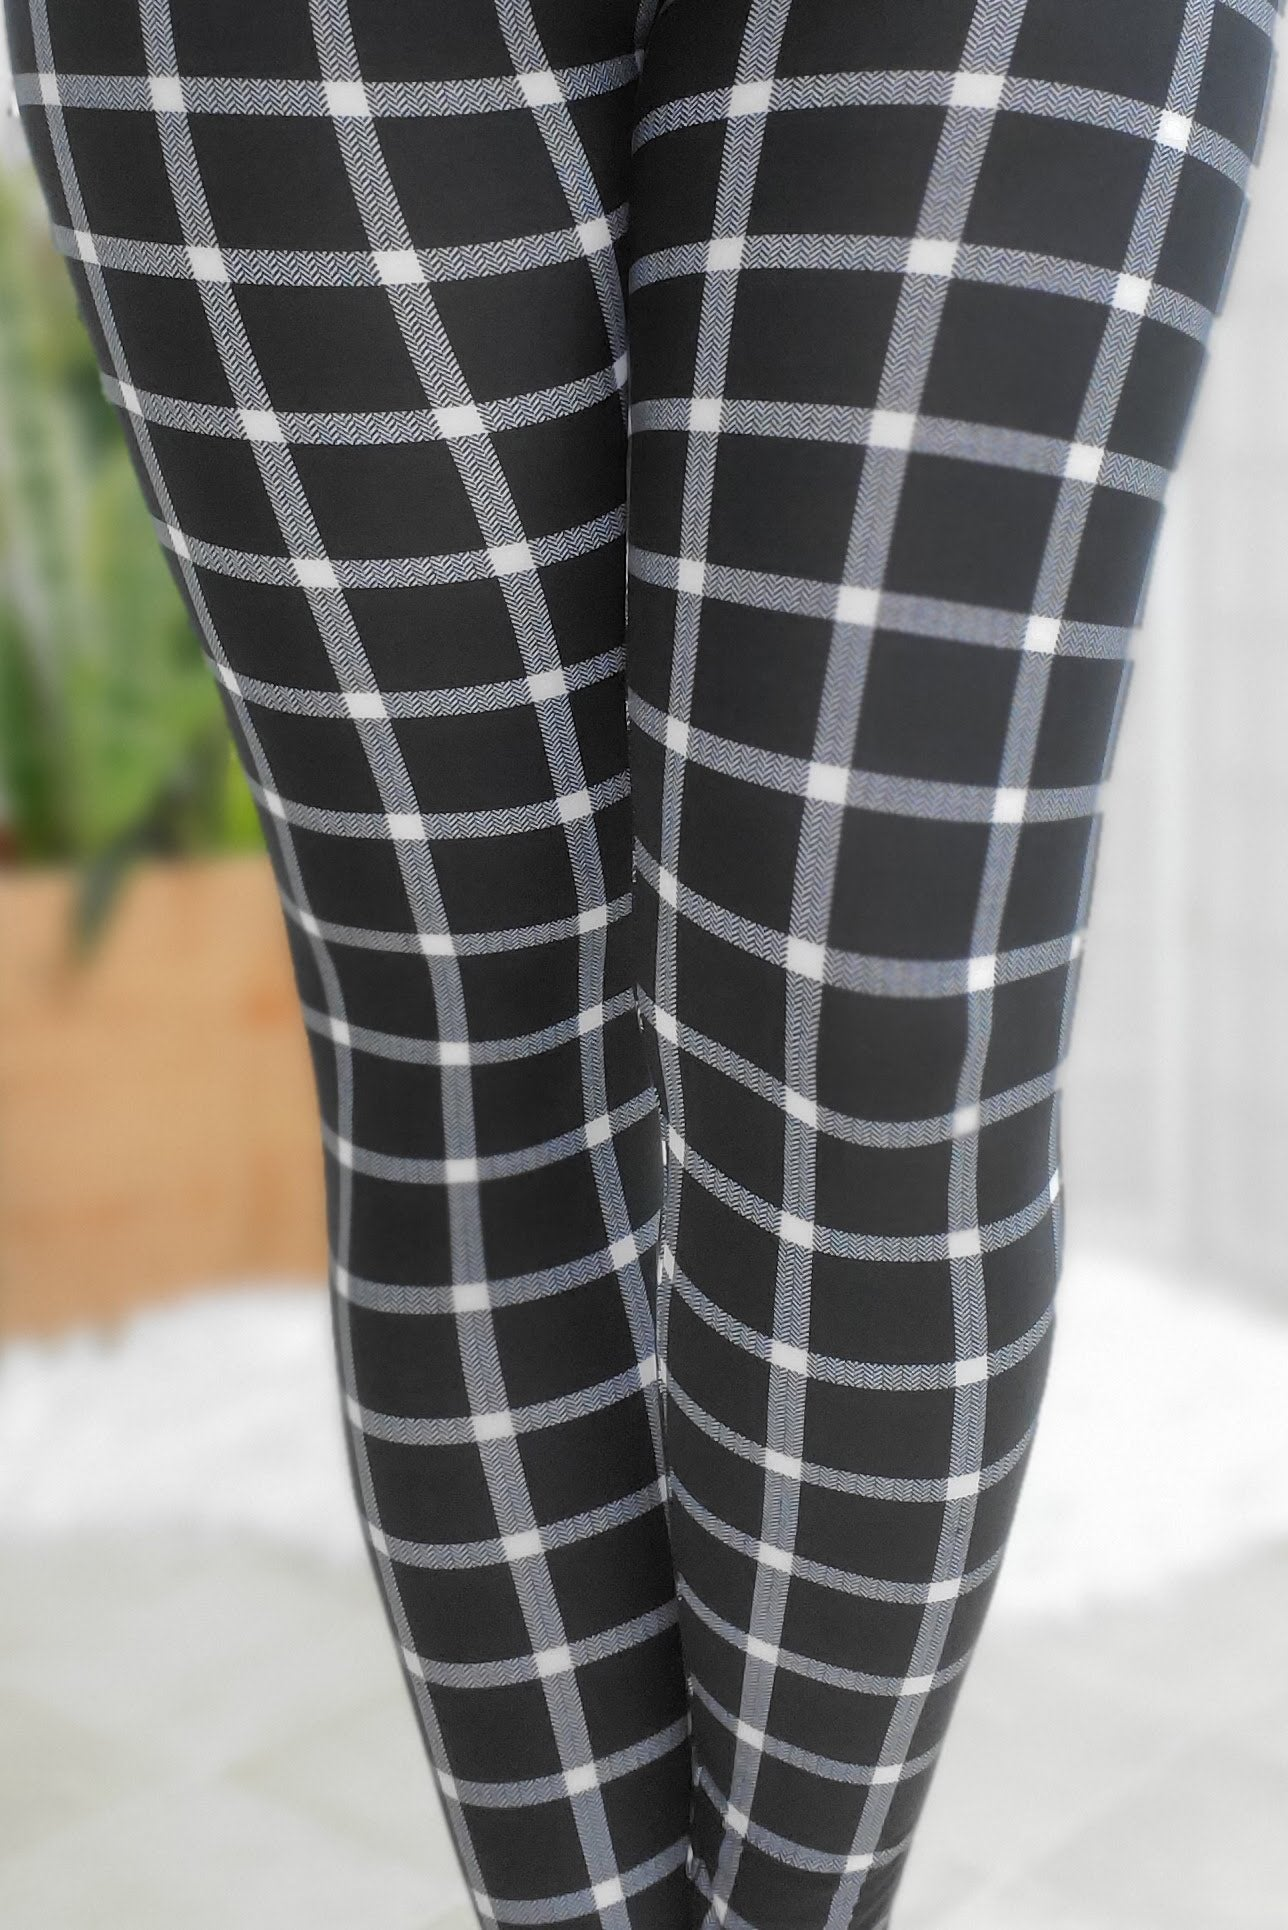 Checkered Plaid Leggings Yoga Band *SPECIALIZED*